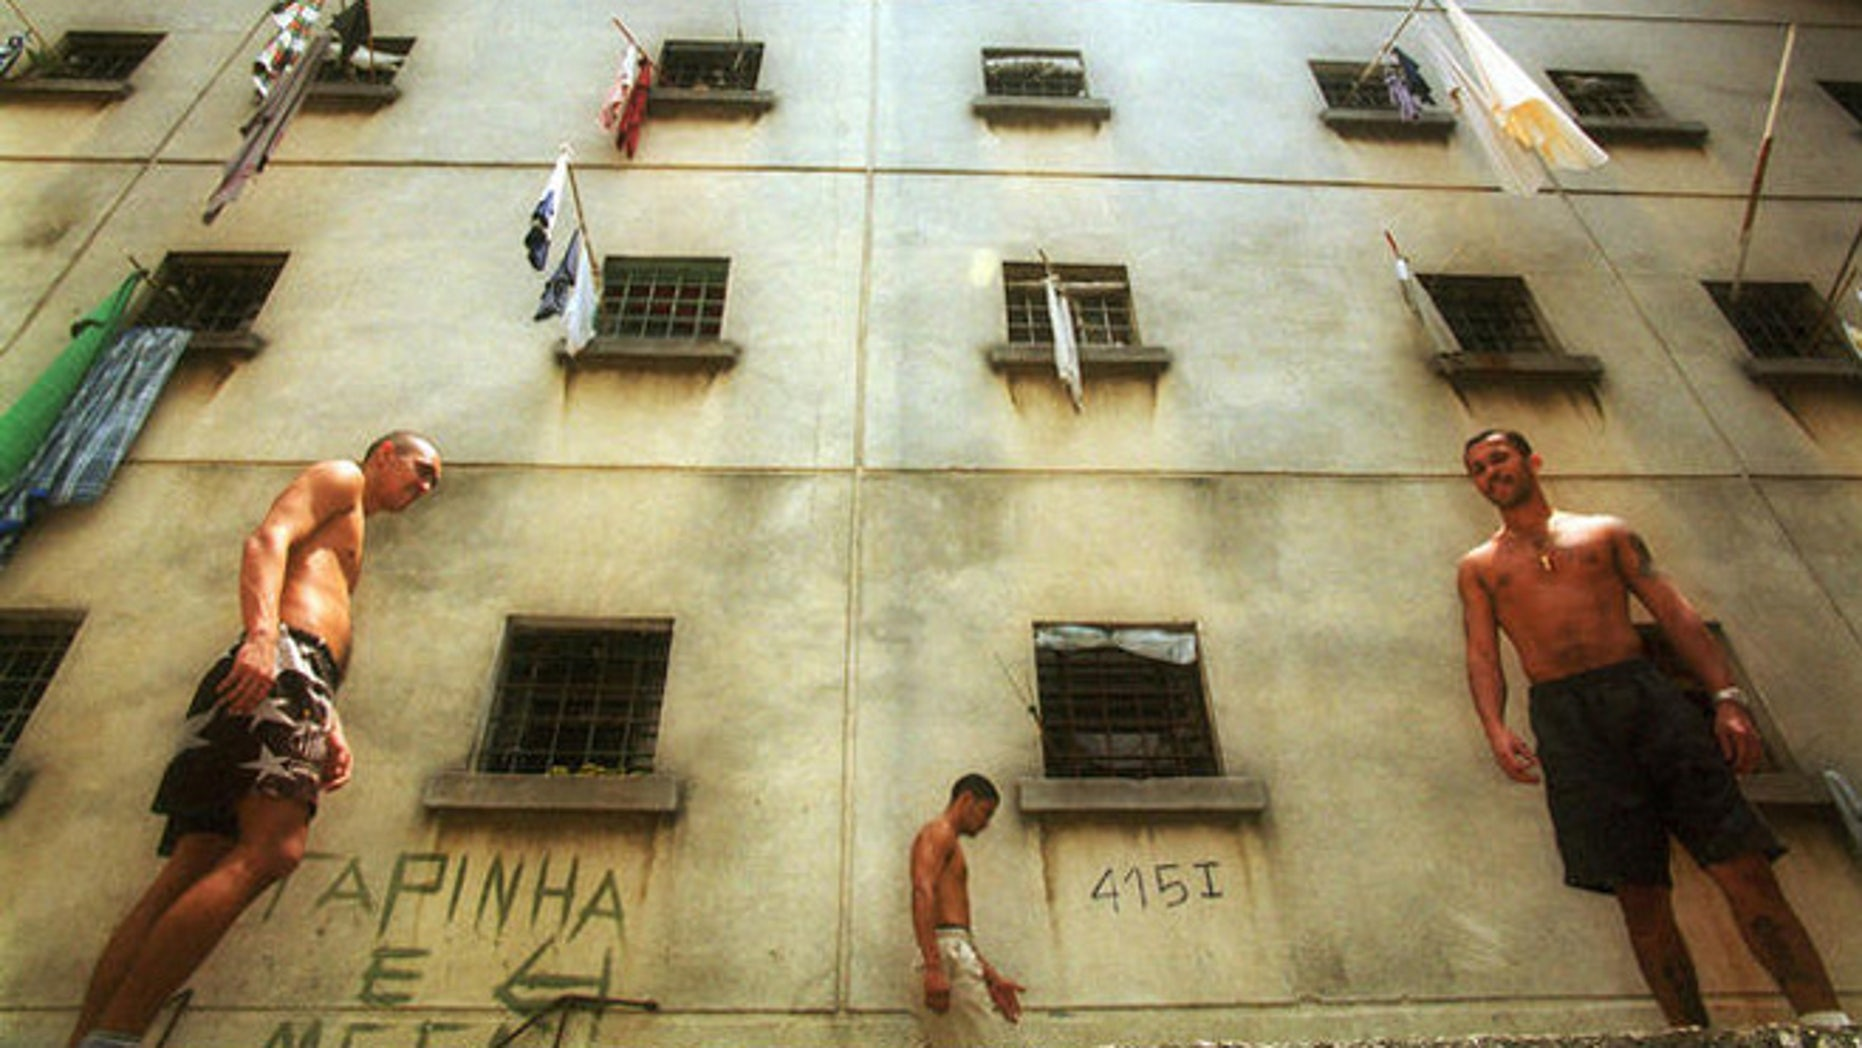 Inmates walk around a yard at the Carandiru detention center in Sao Paulo, Brazil, Oct. 11, 2000. Built for 3,200 inmates, the prison, which is perhaps best known for the massacre of 111 inmates by riot police during a 1992 rebellion, now houses 7,300 inmates and still smolders with violence and unrest. (AP Photo/Dario Lopez-Mills)